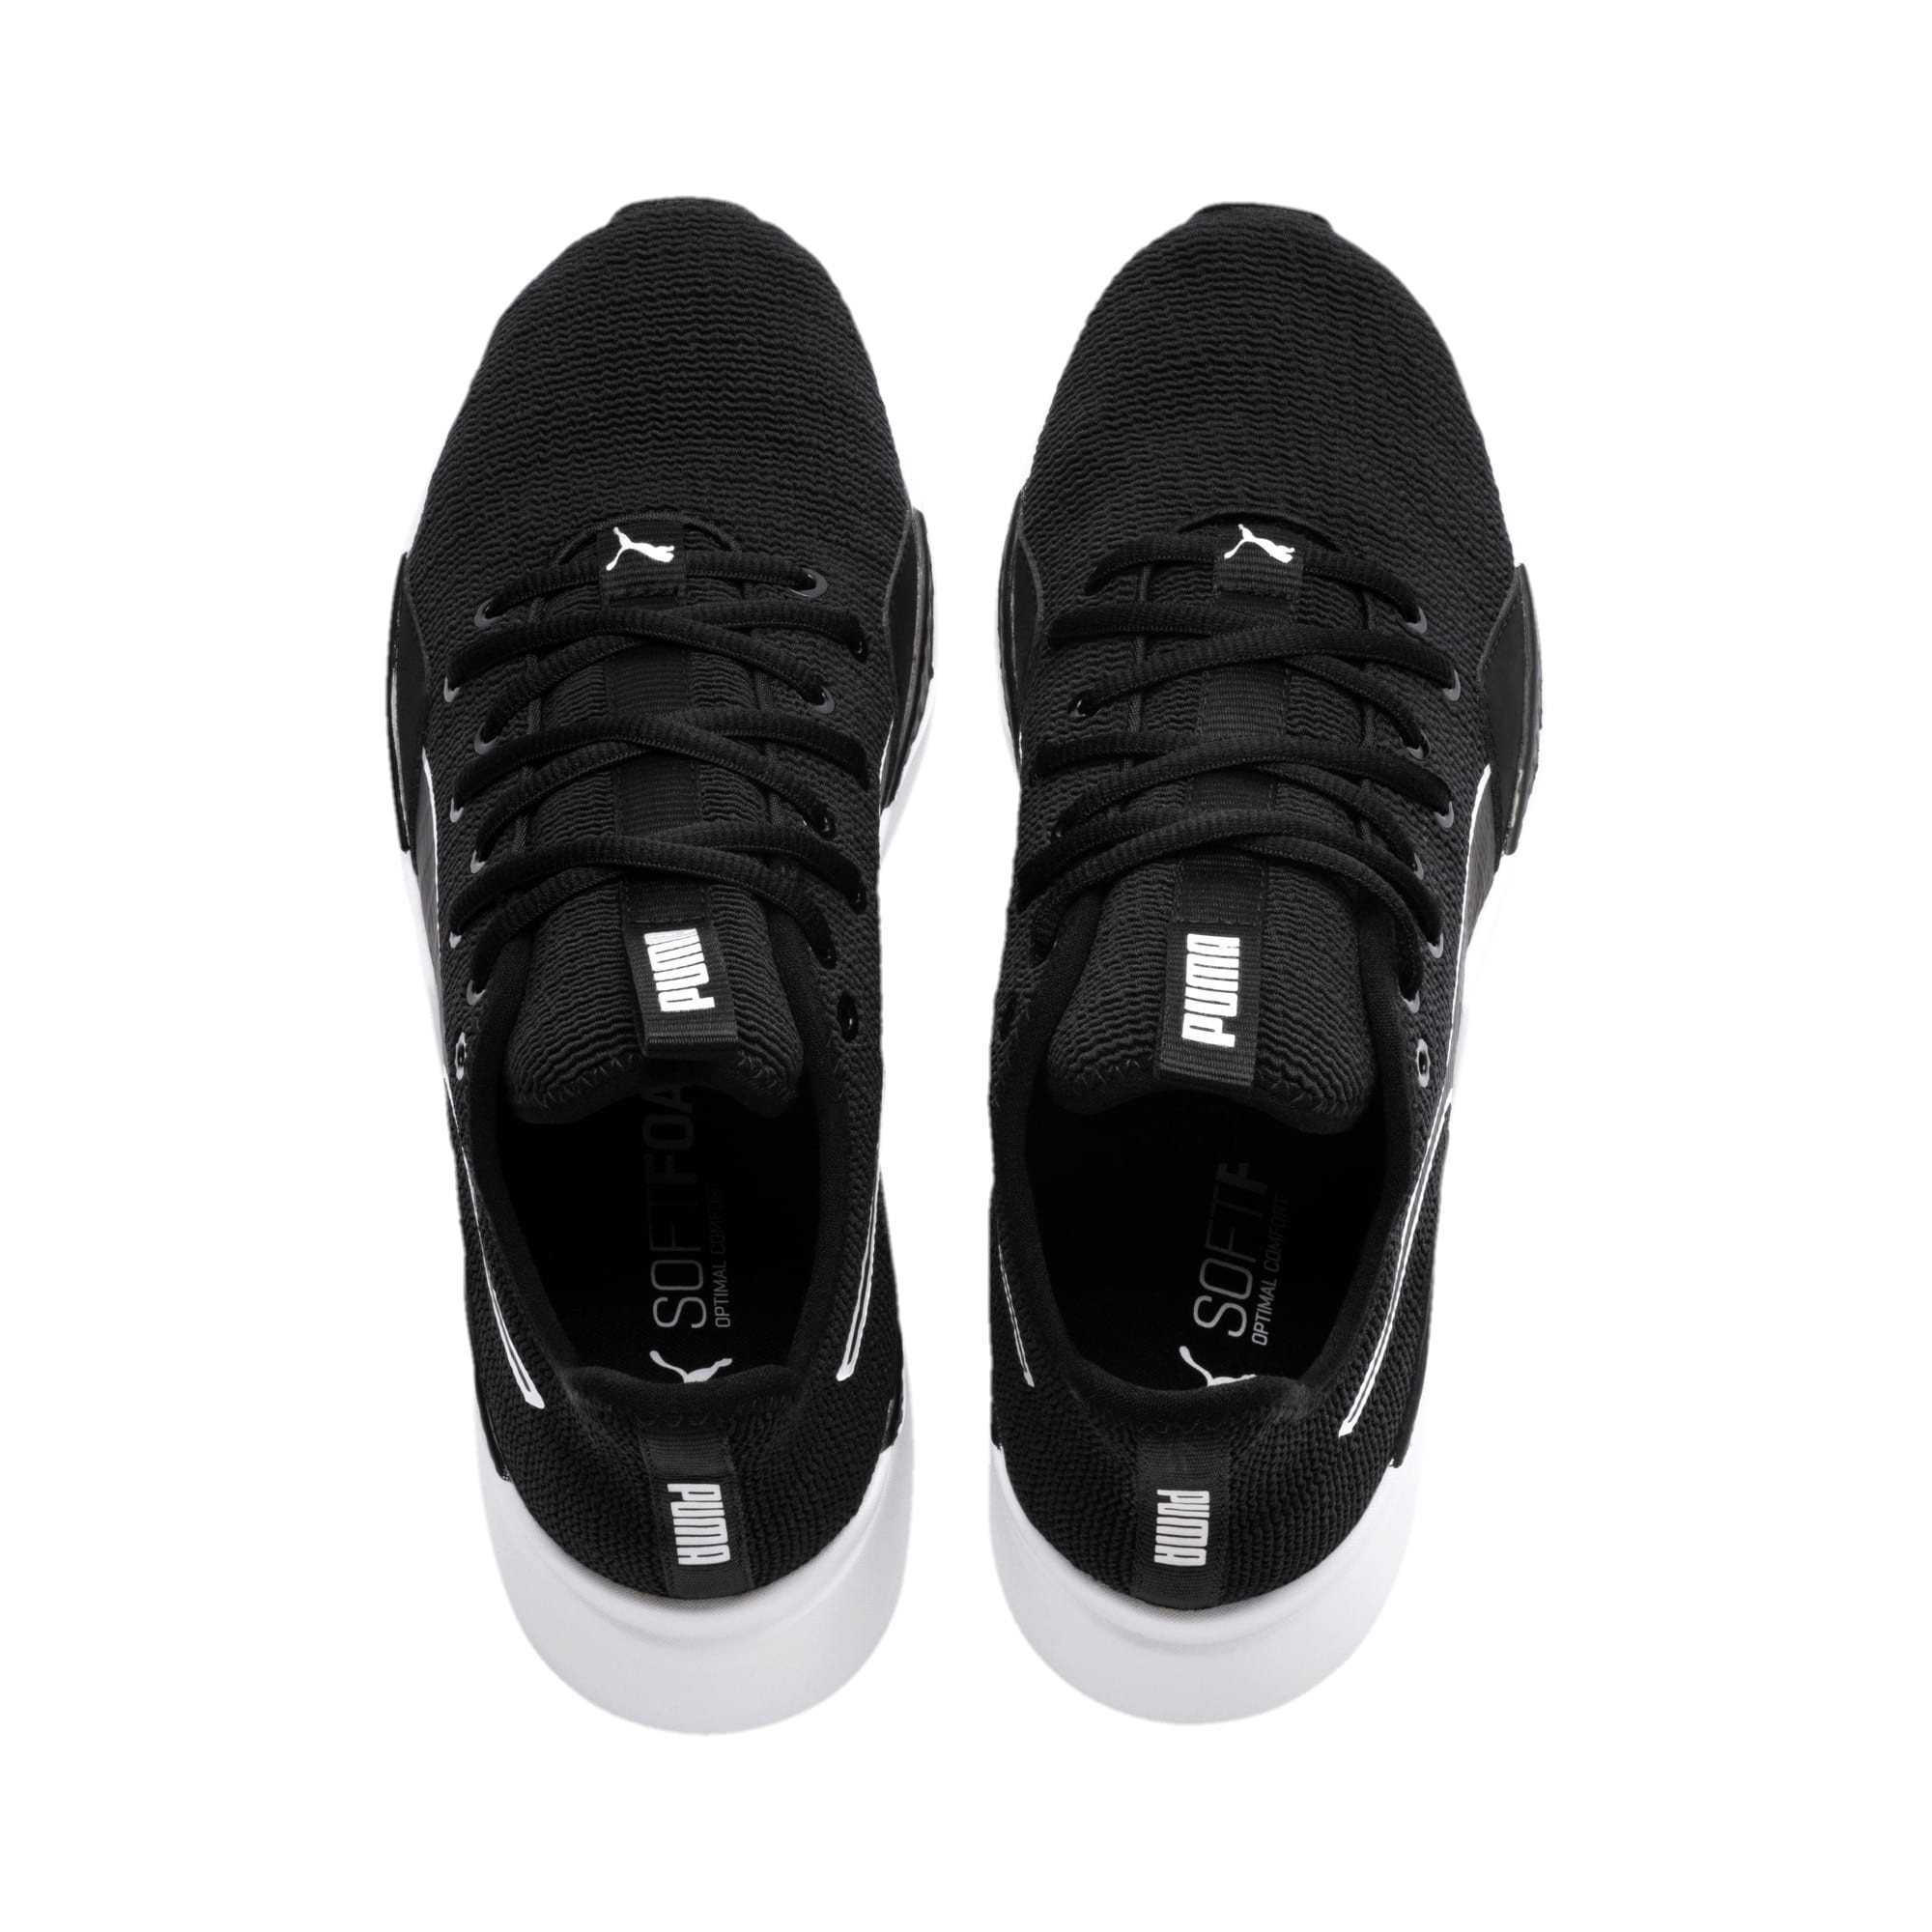 Thumbnail 7 of The Black Incite FS Wave Wn's, Puma Black-Puma White, medium-IND